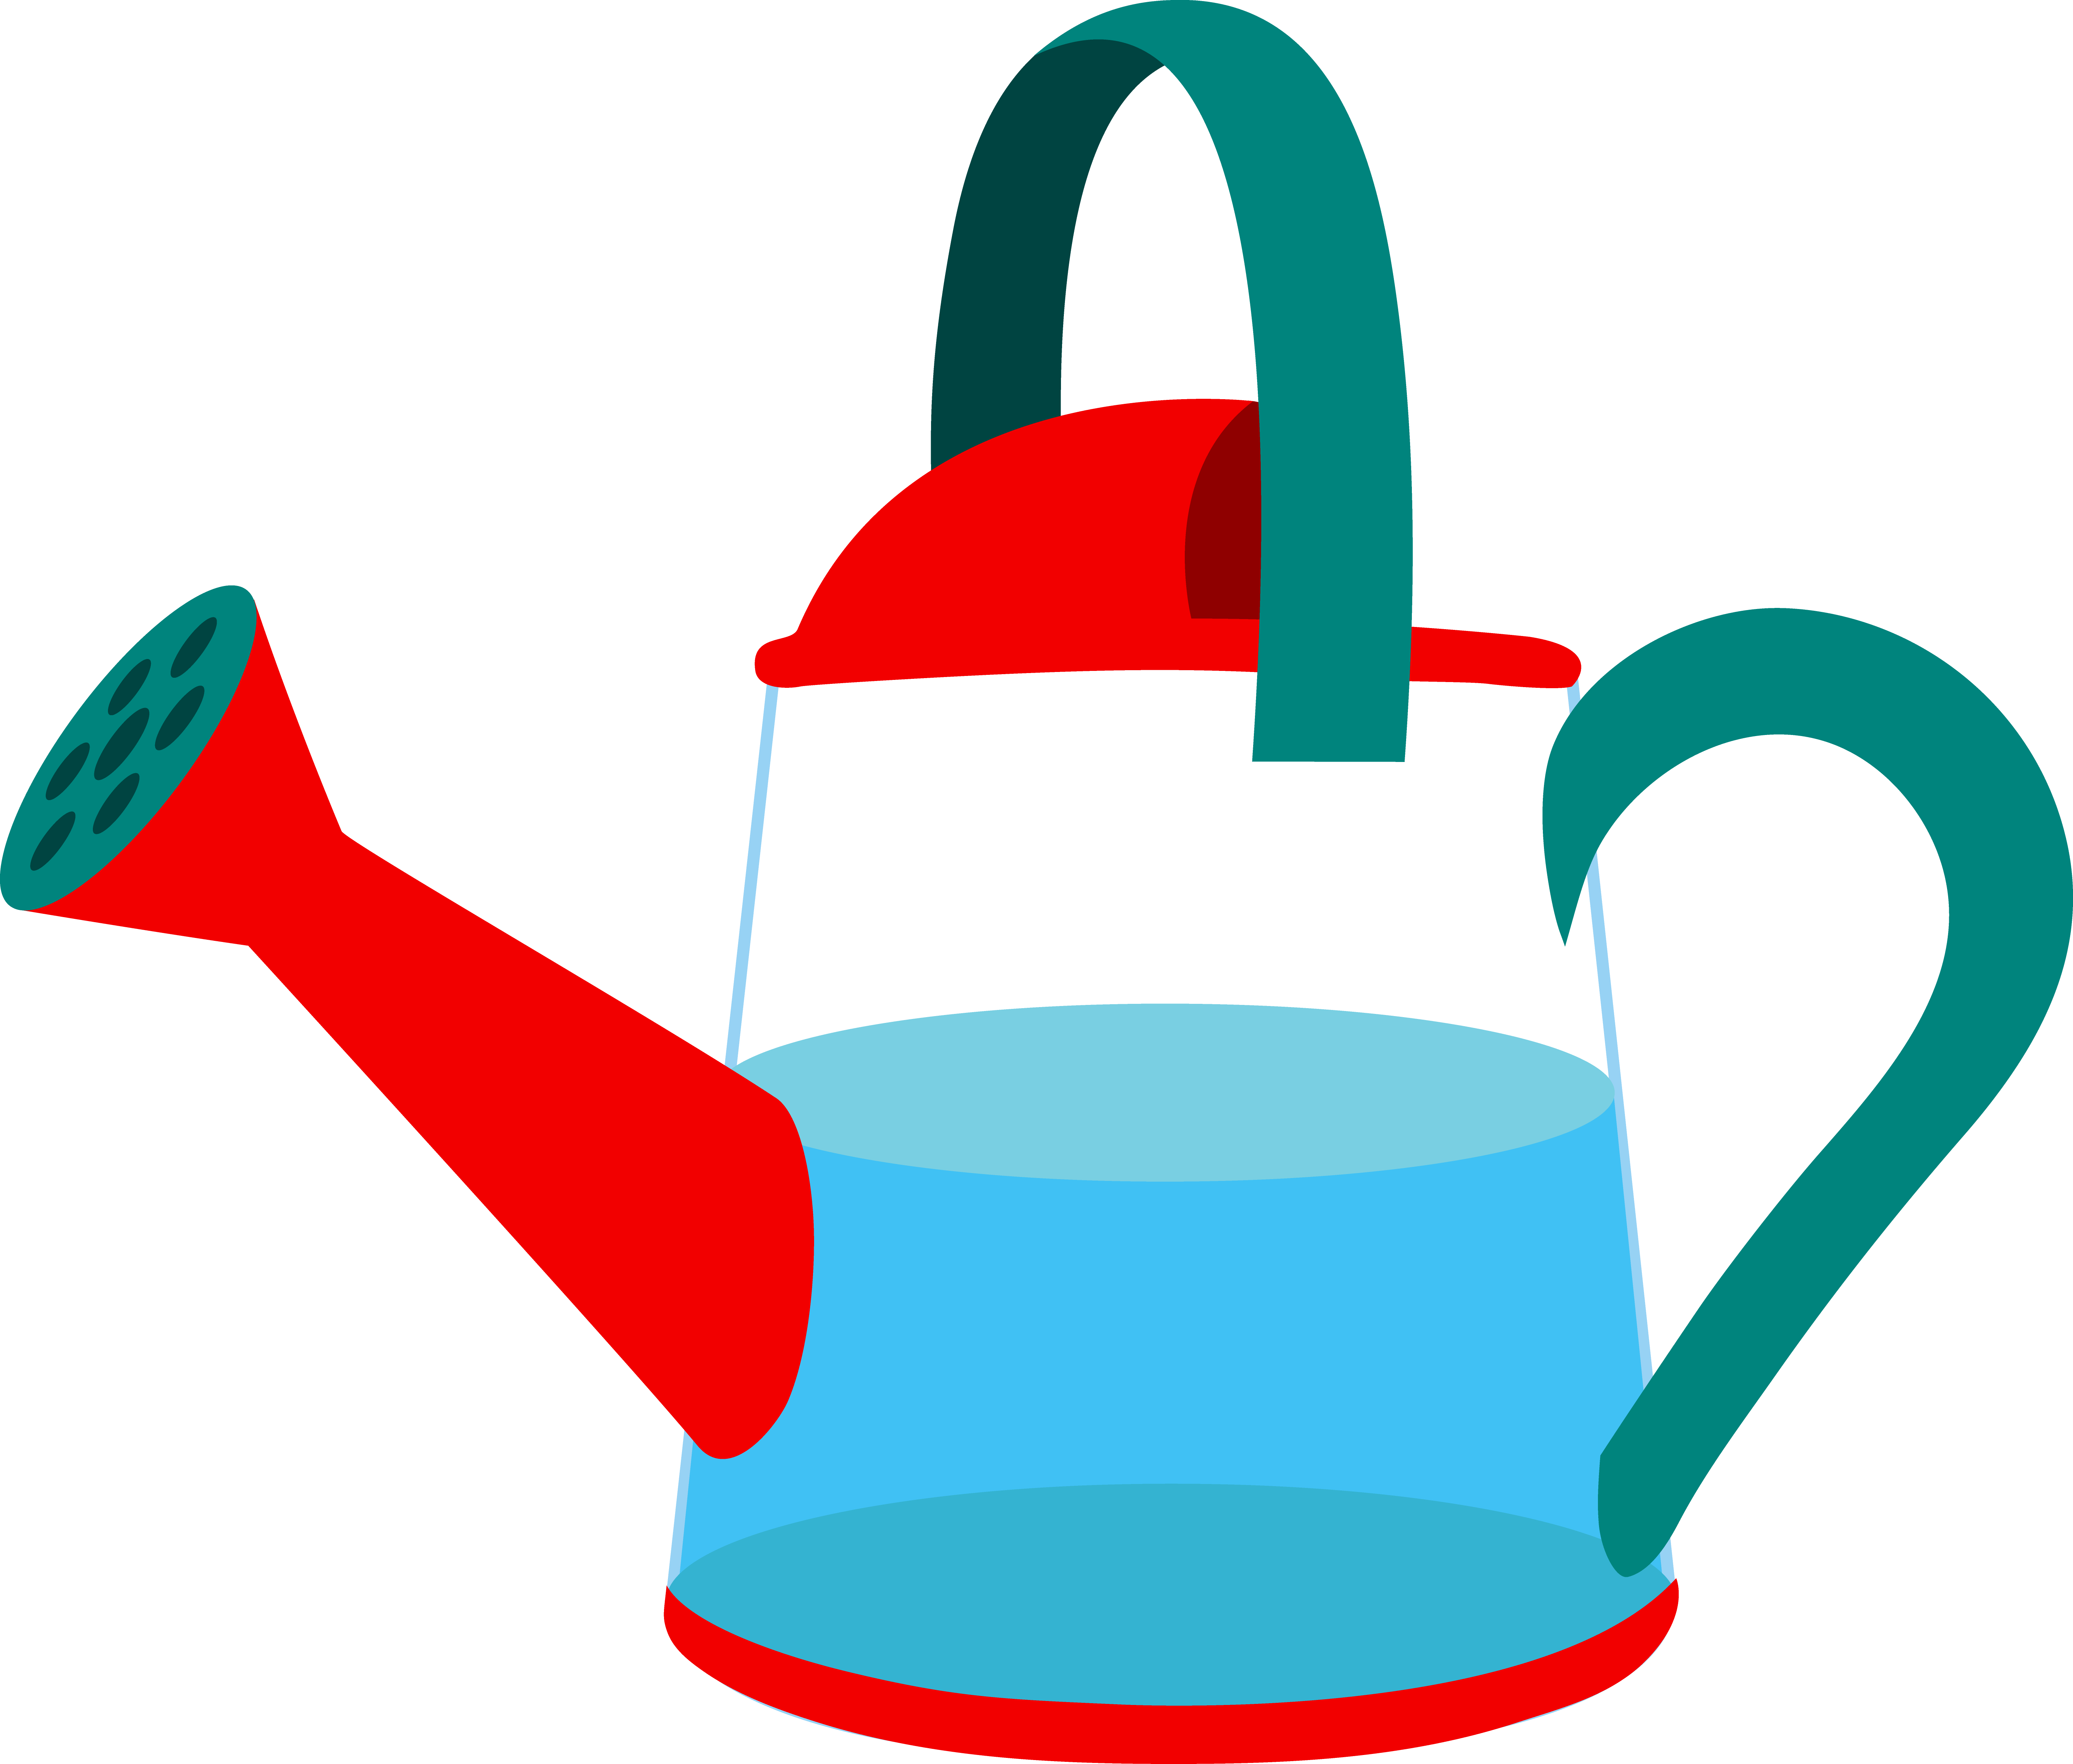 Garden clipart horticulture. Half full watering can